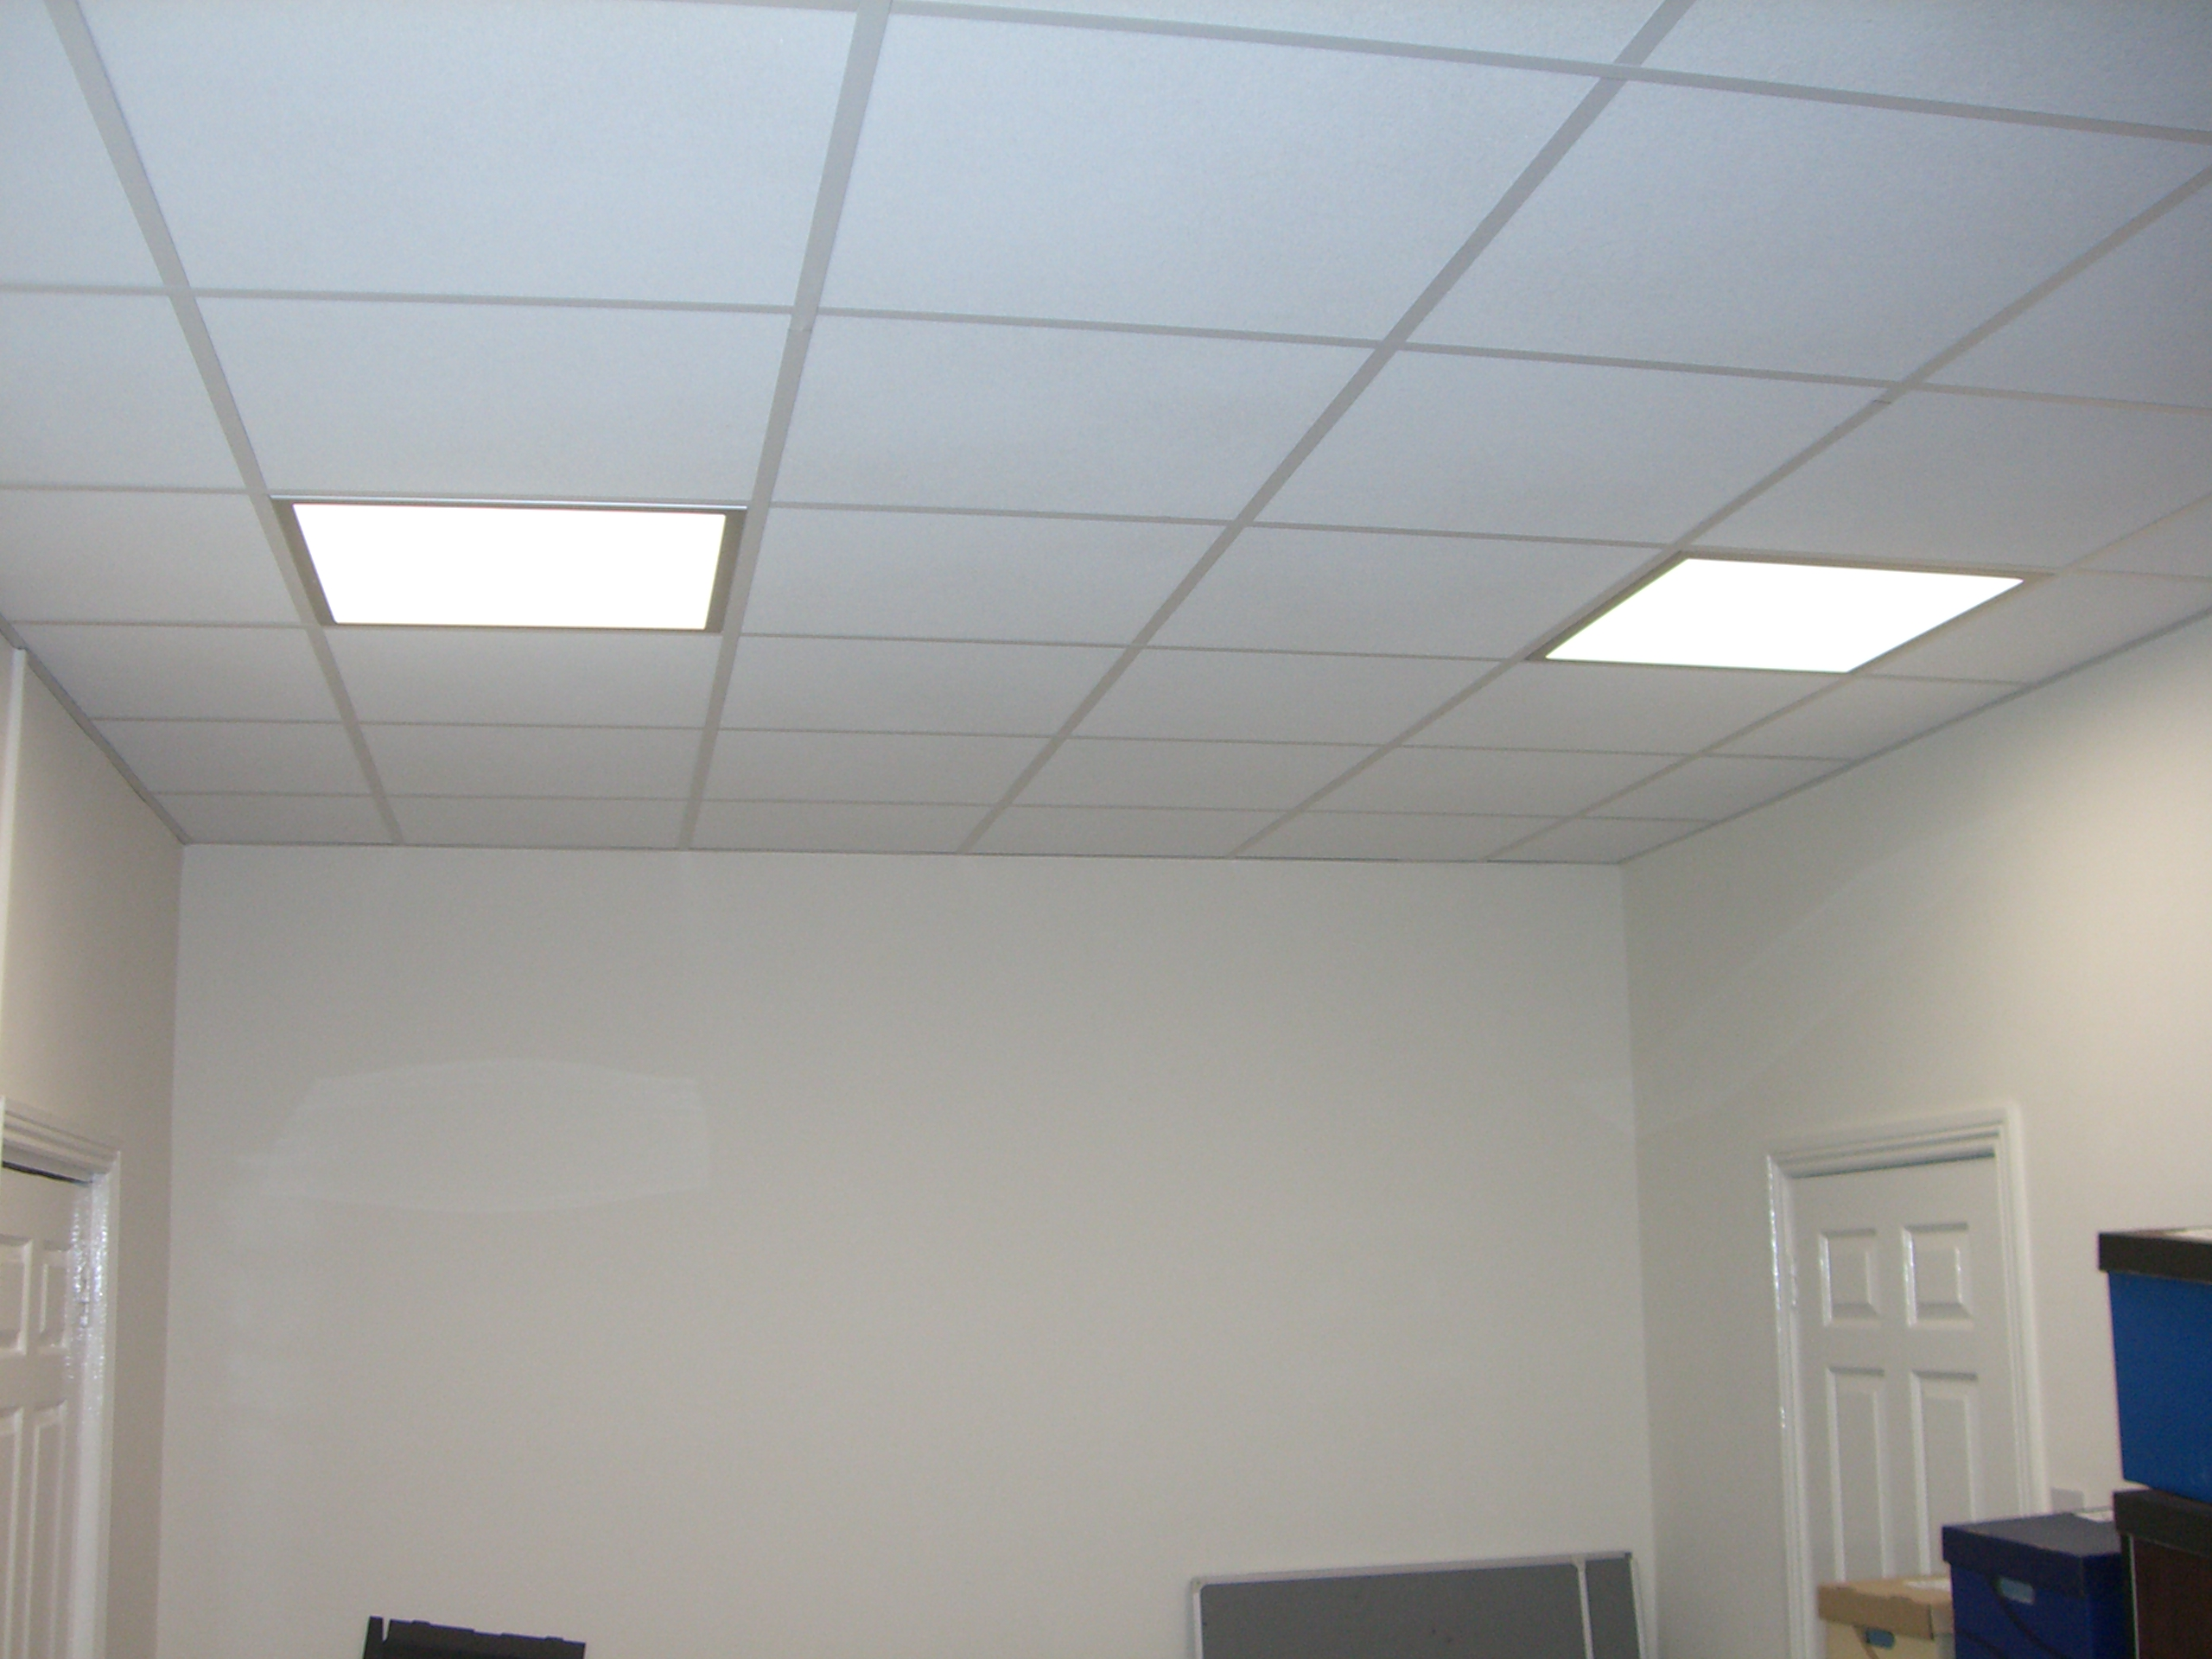 Real marketing pune ceiling products all over pune india create various visual effects with a choice of images offered by cirrus themes dailygadgetfo Images